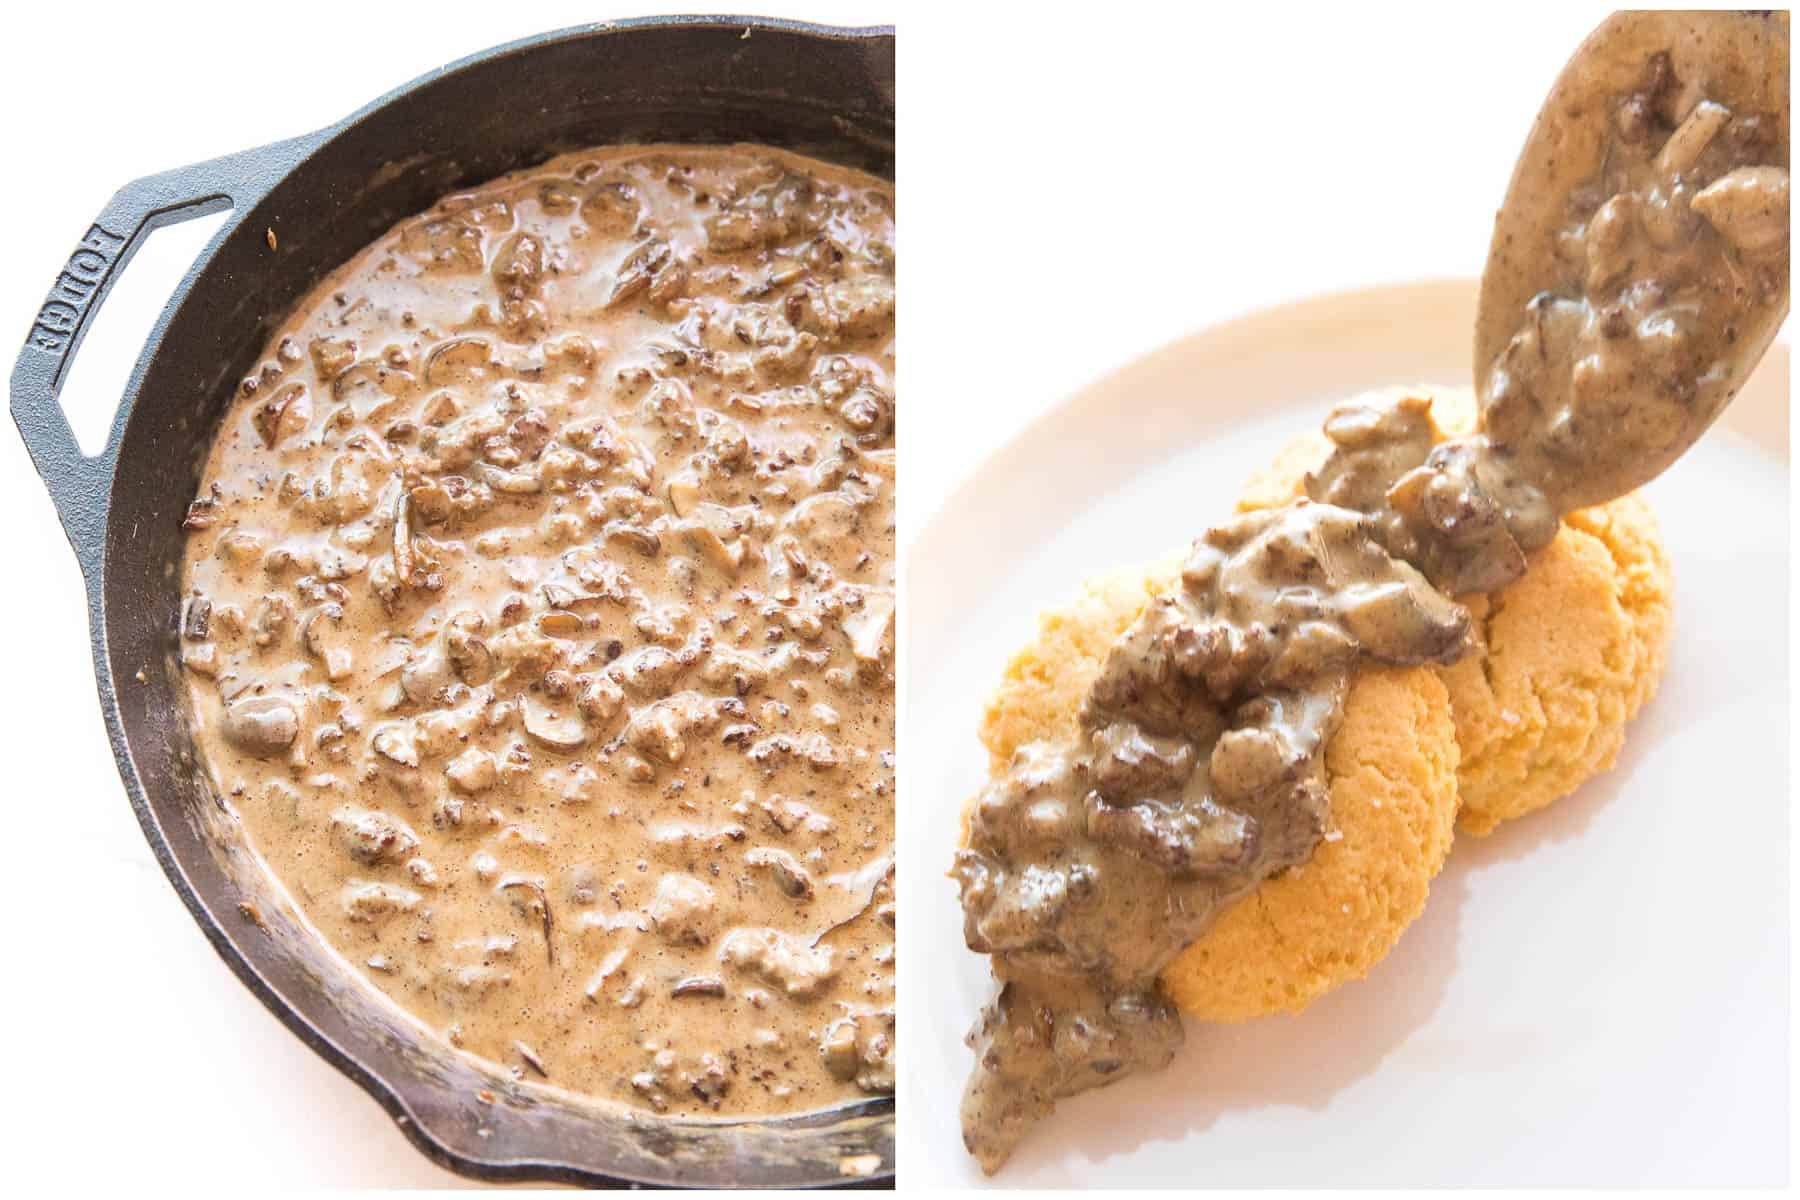 STEPS TO MAKE BISCUITS AND GRAVY